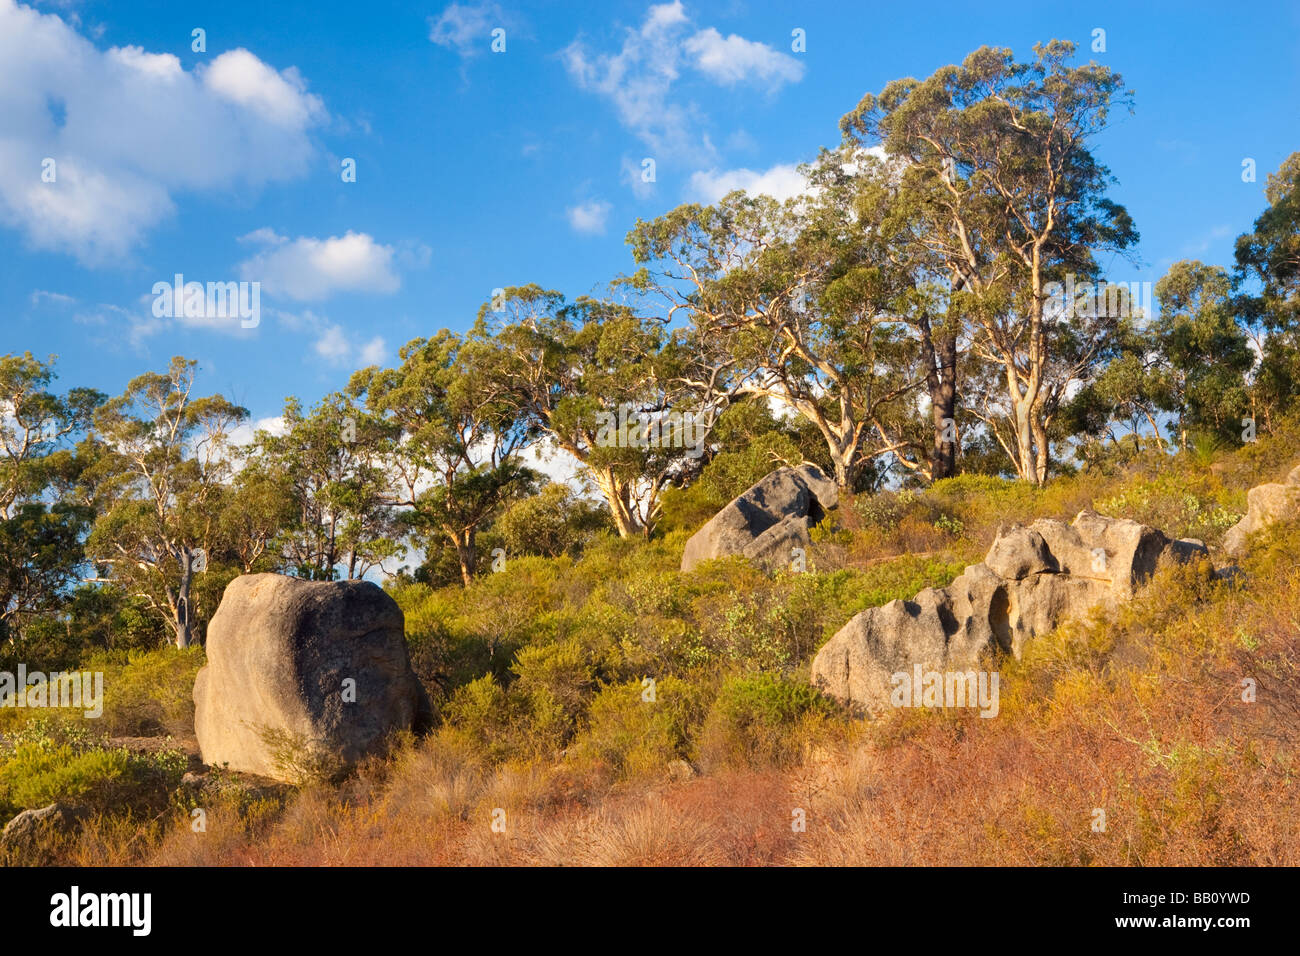 Eucalyptus trees and bushland growing on the granite escarpments of John Forrest National Park. Perth, Western Australia - Stock Image